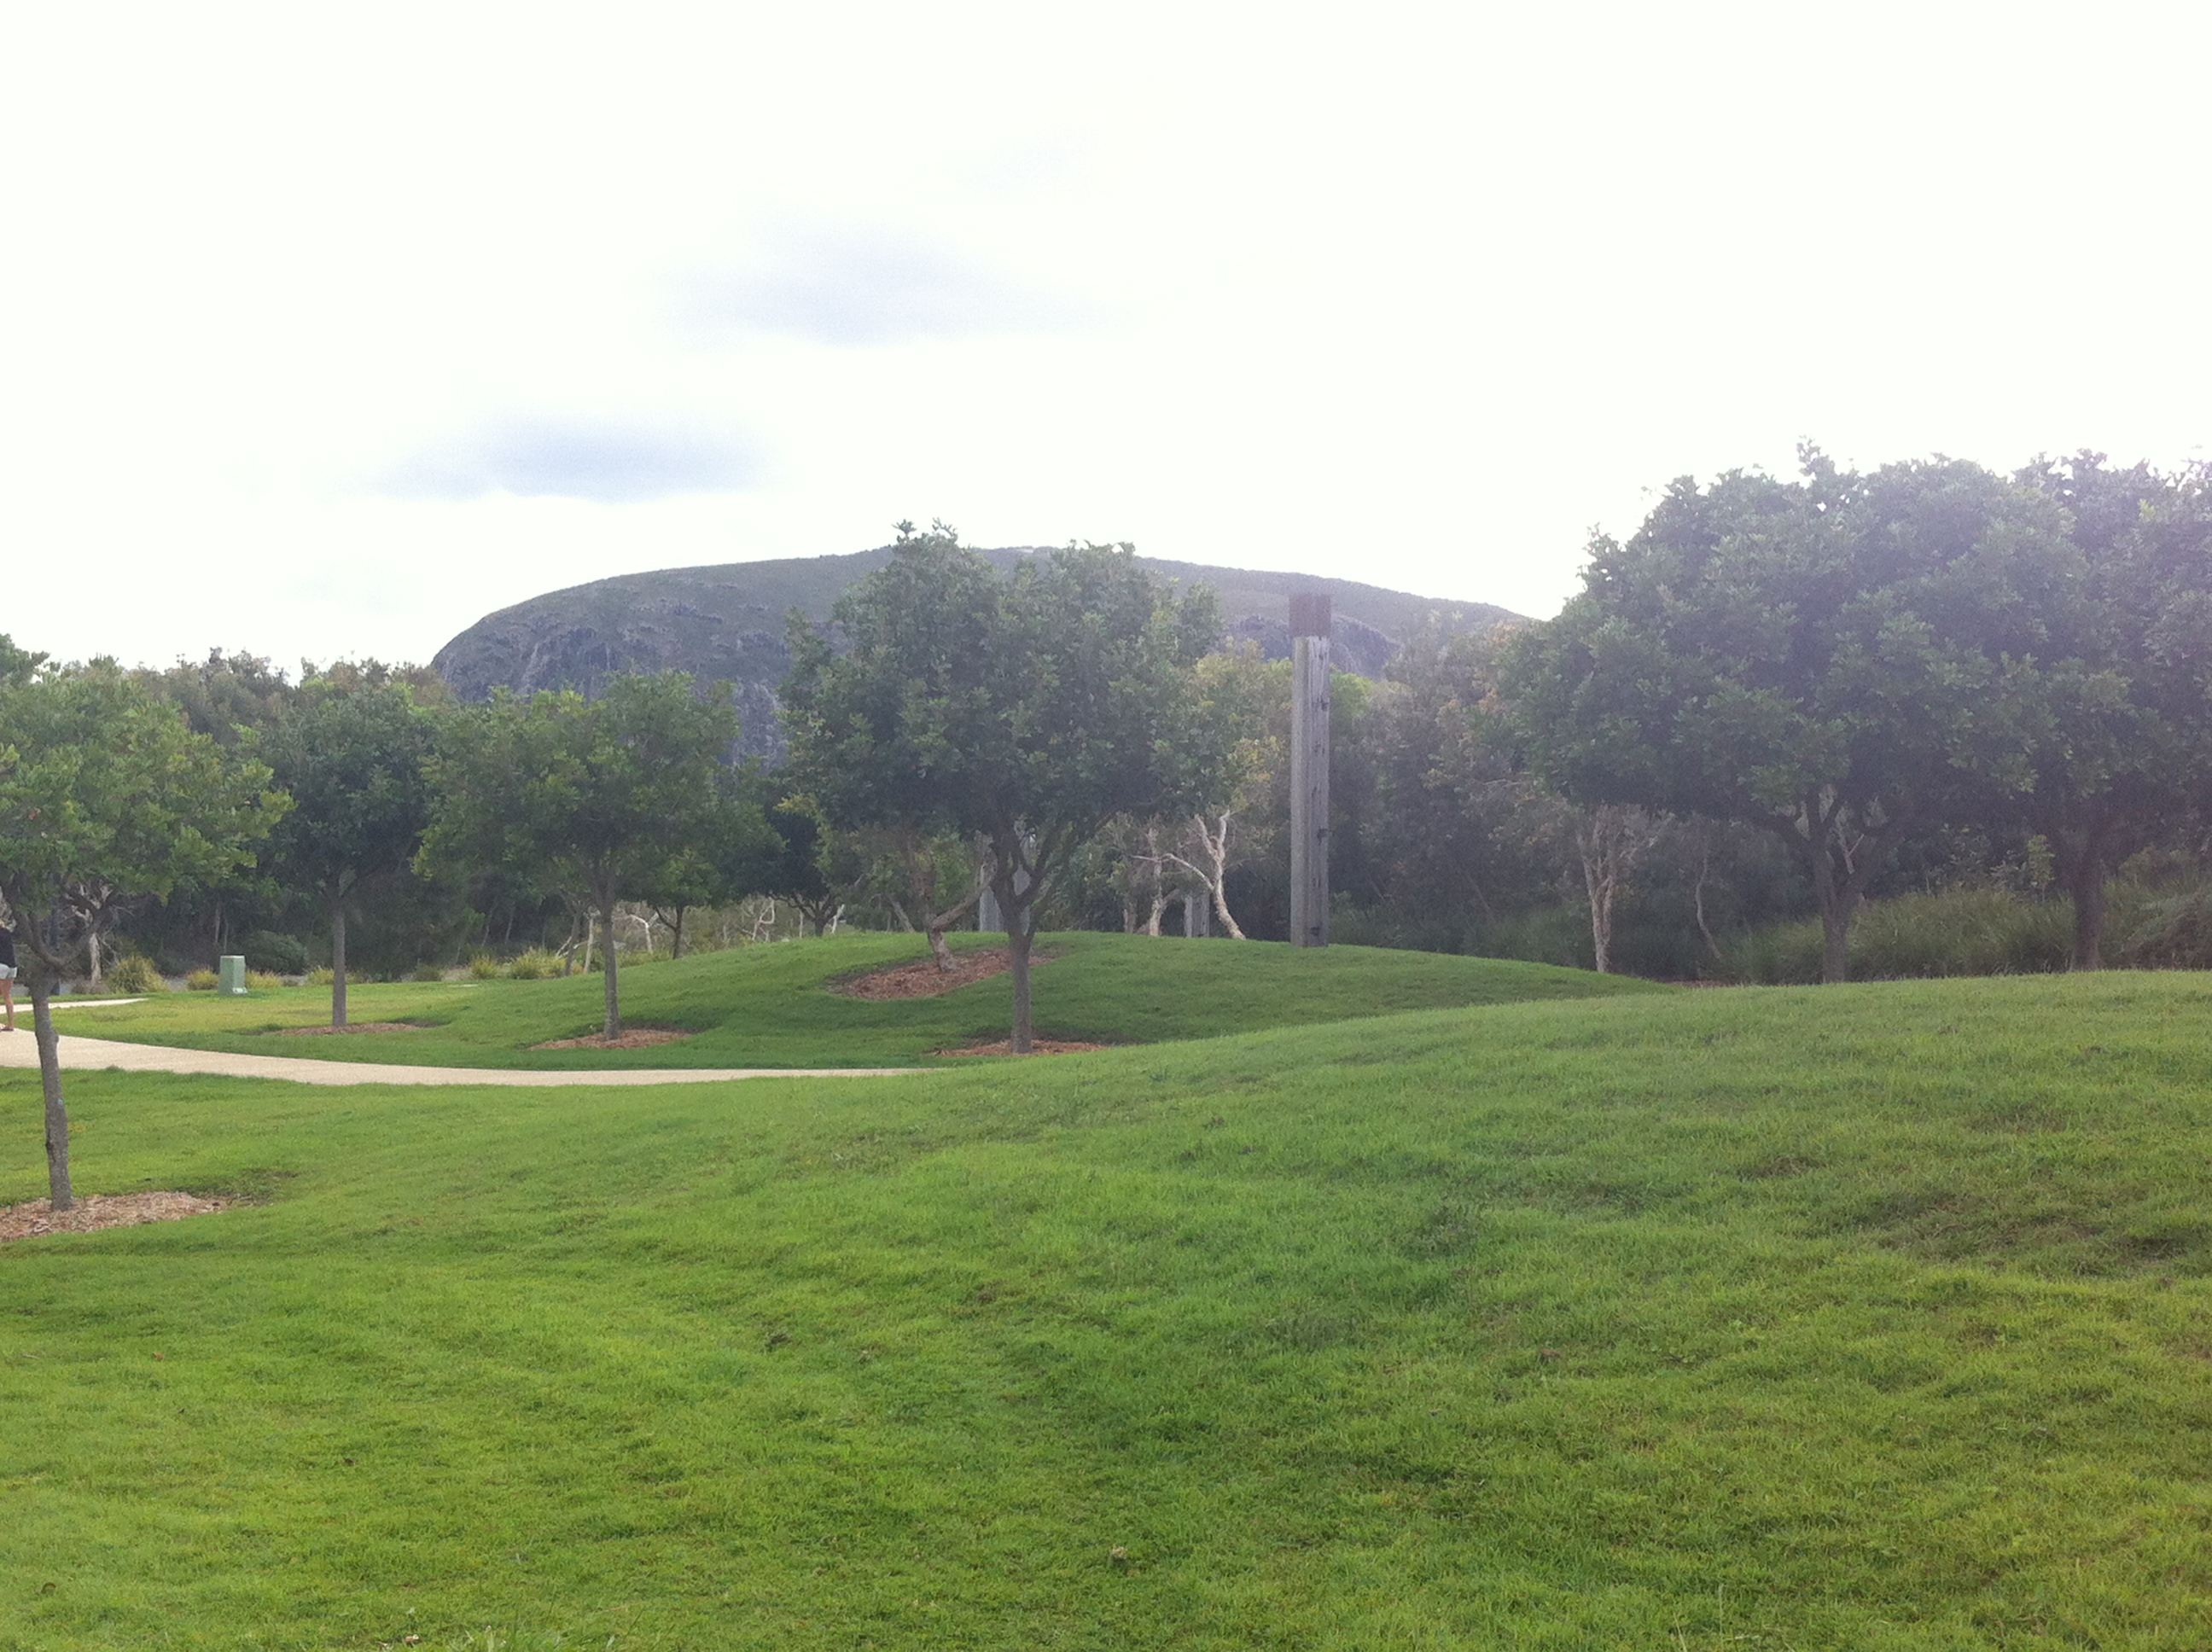 Nearby Mount Coolum